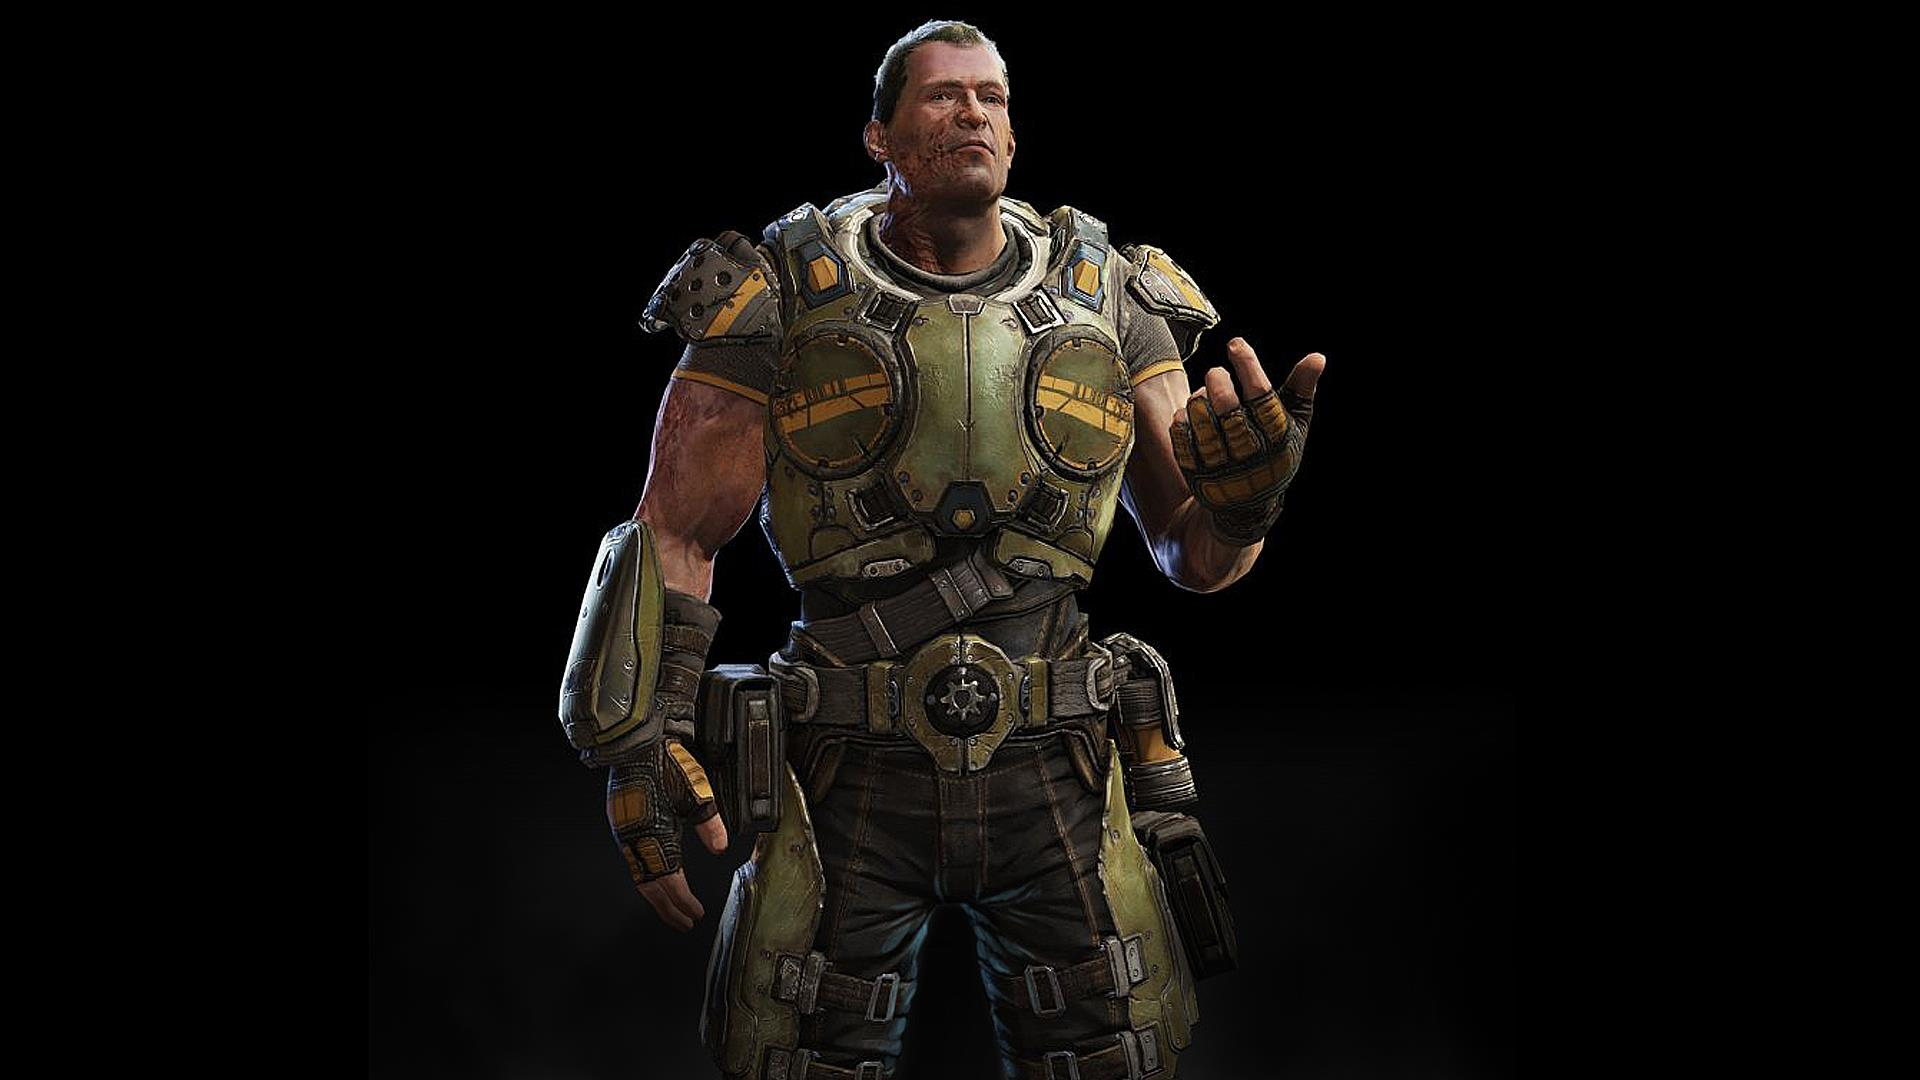 the Collection Gears Of War Video Game Gears Of War Judgment 268933 1920x1080